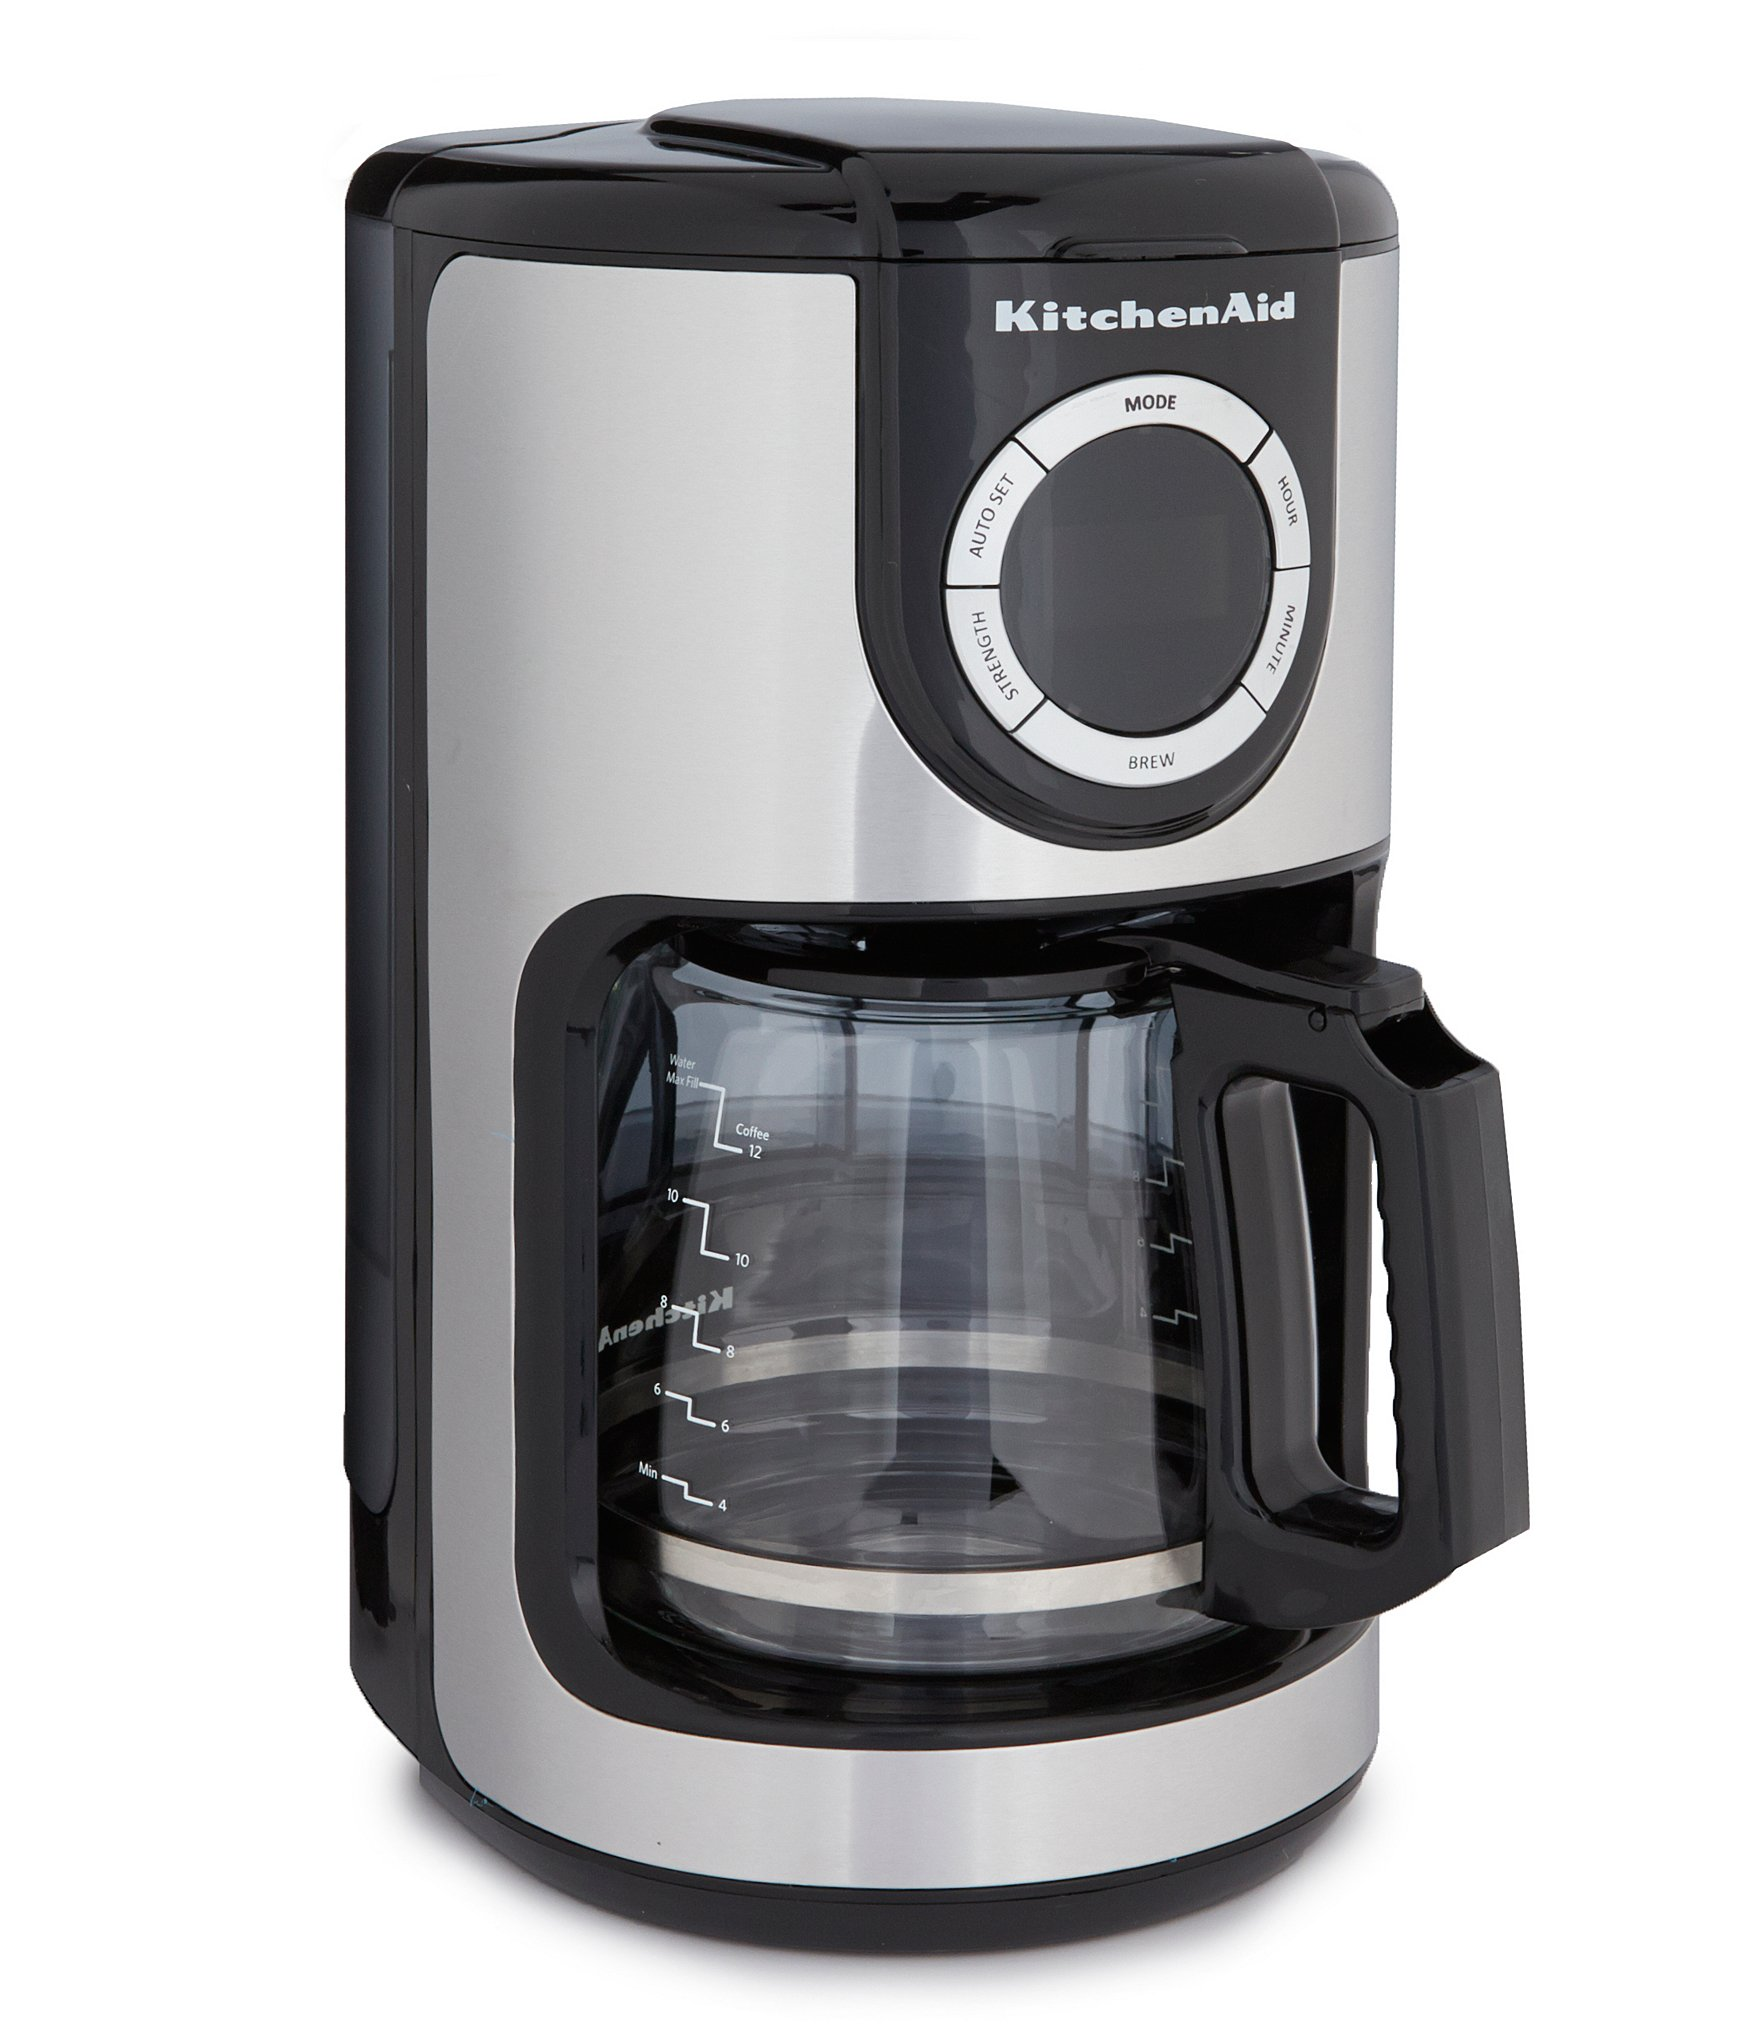 K Cup Coffee Maker Programmable : KitchenAid Programmable 12-Cup Coffee Maker Dillards